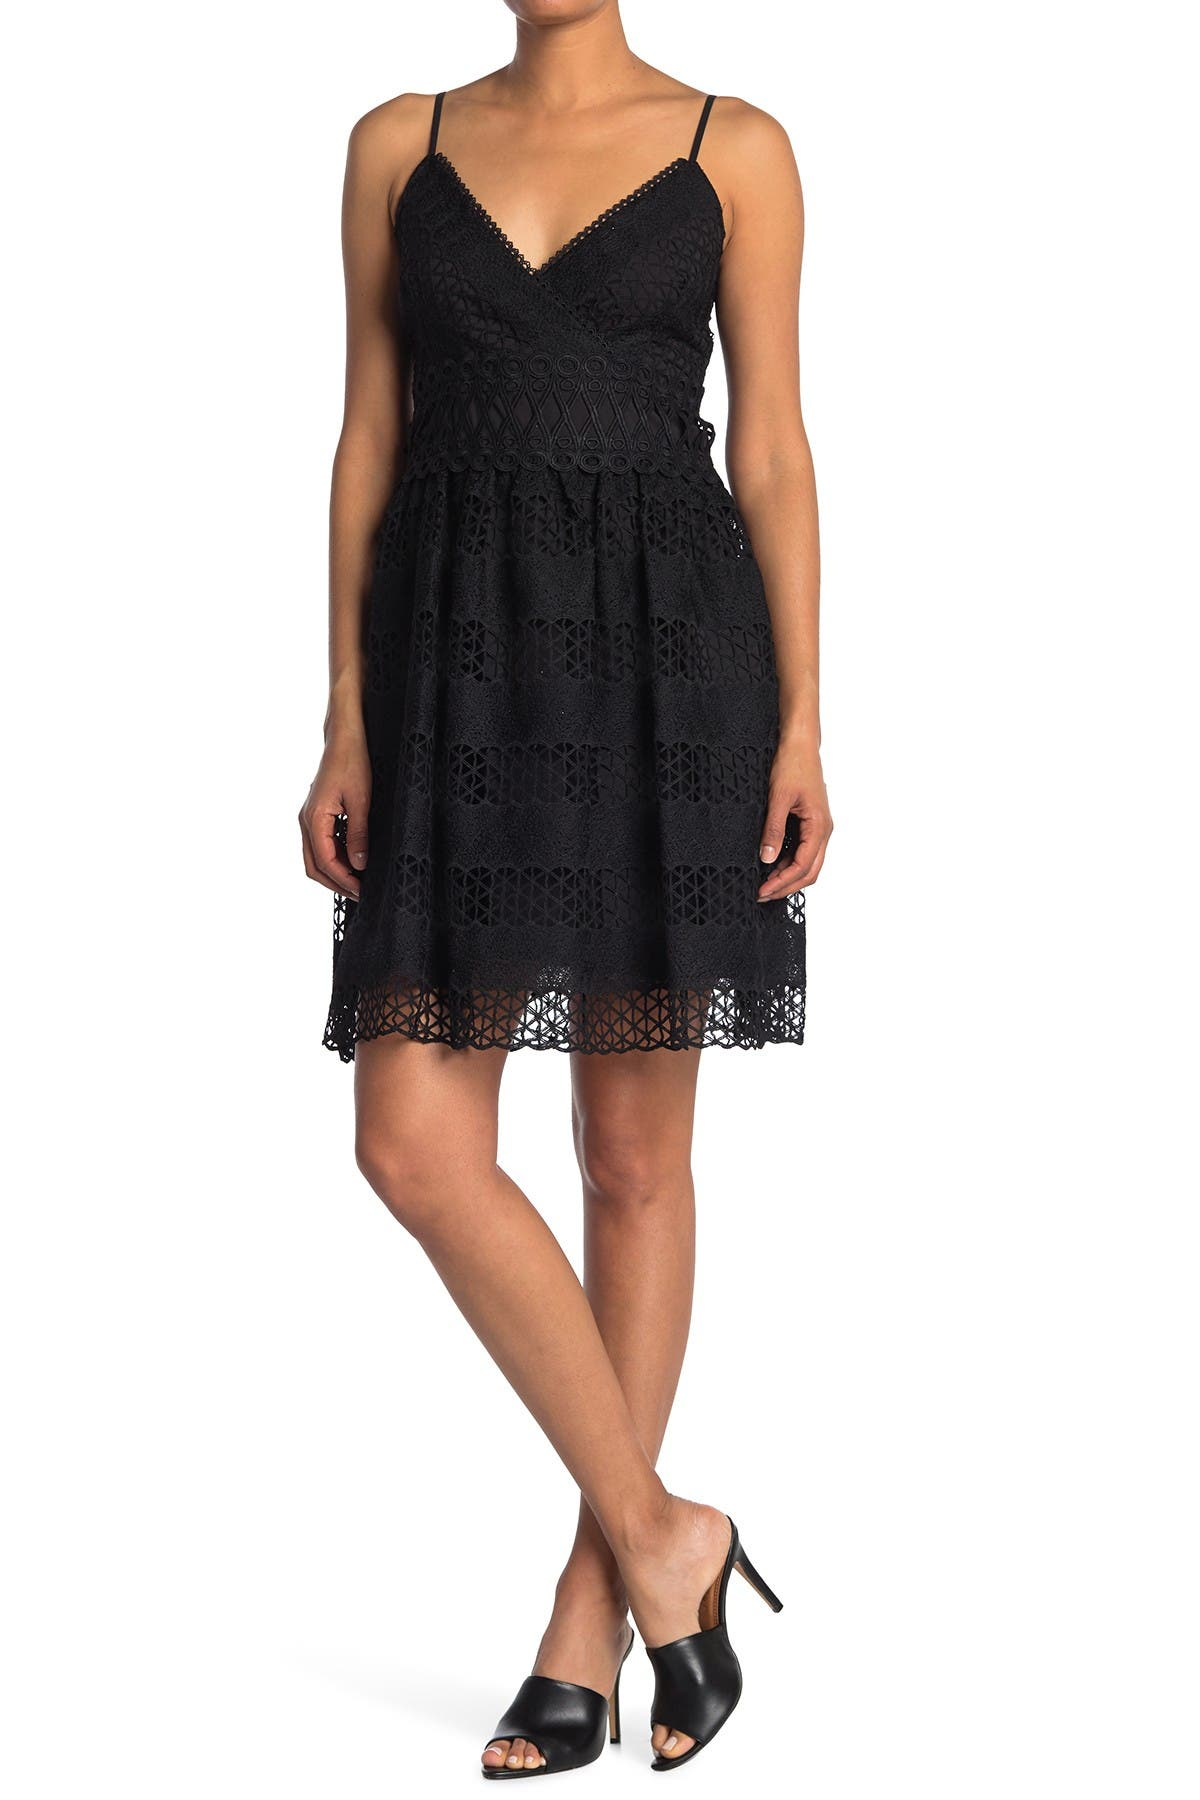 Image of GUESS Mesh Overlay Party Dress